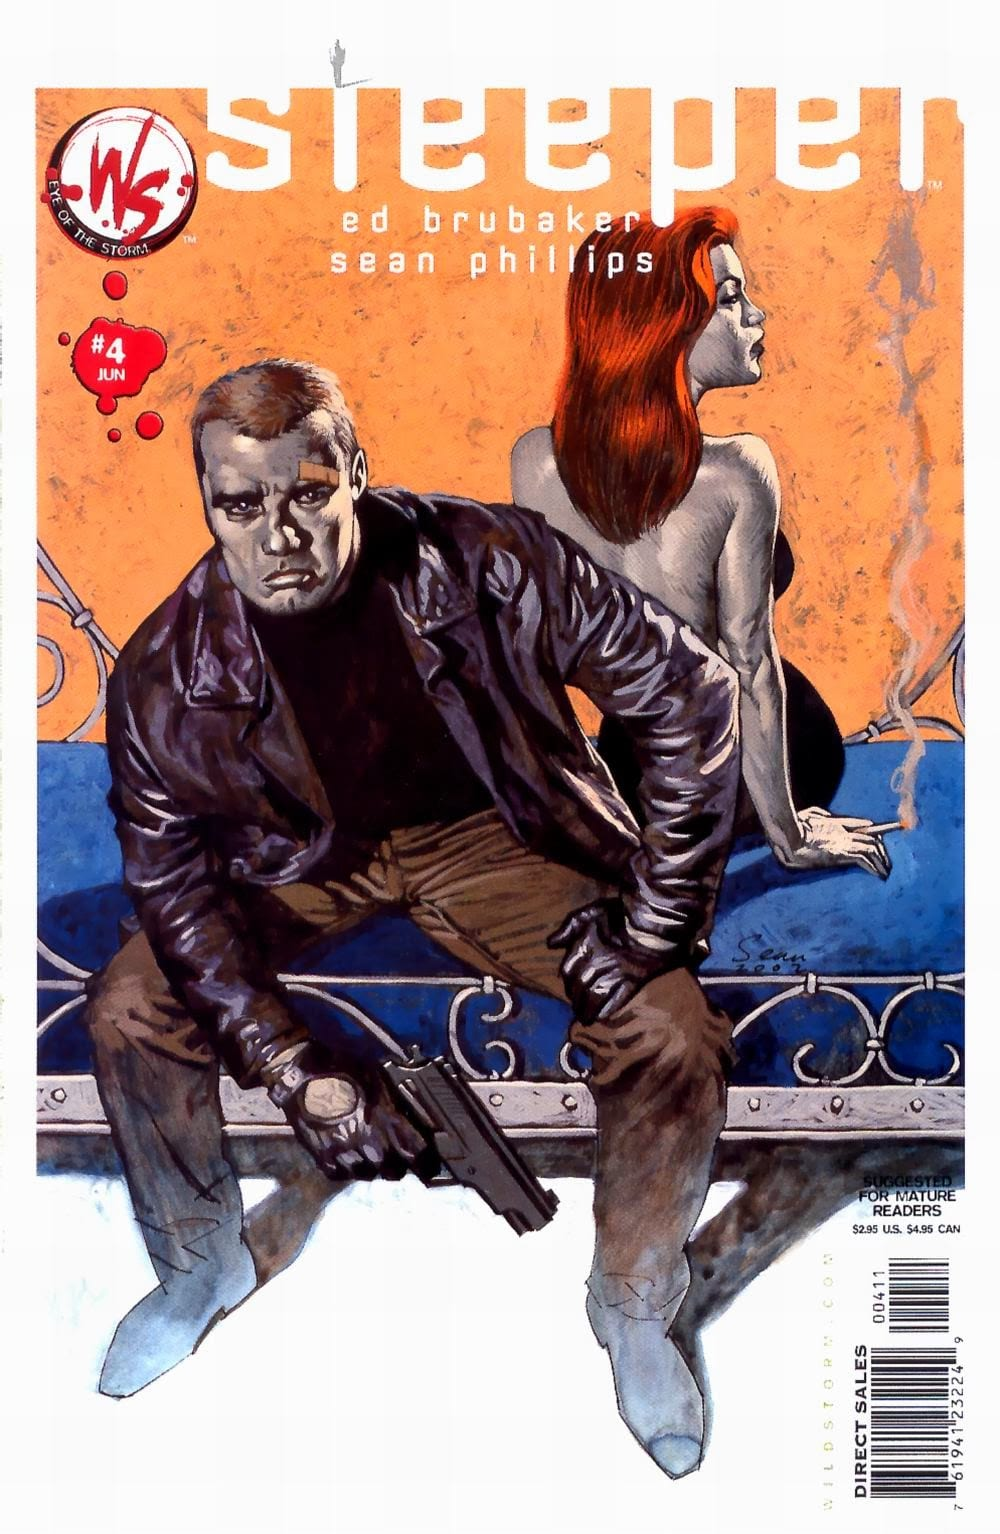 Sleeper comic book cover with a man holding a gun